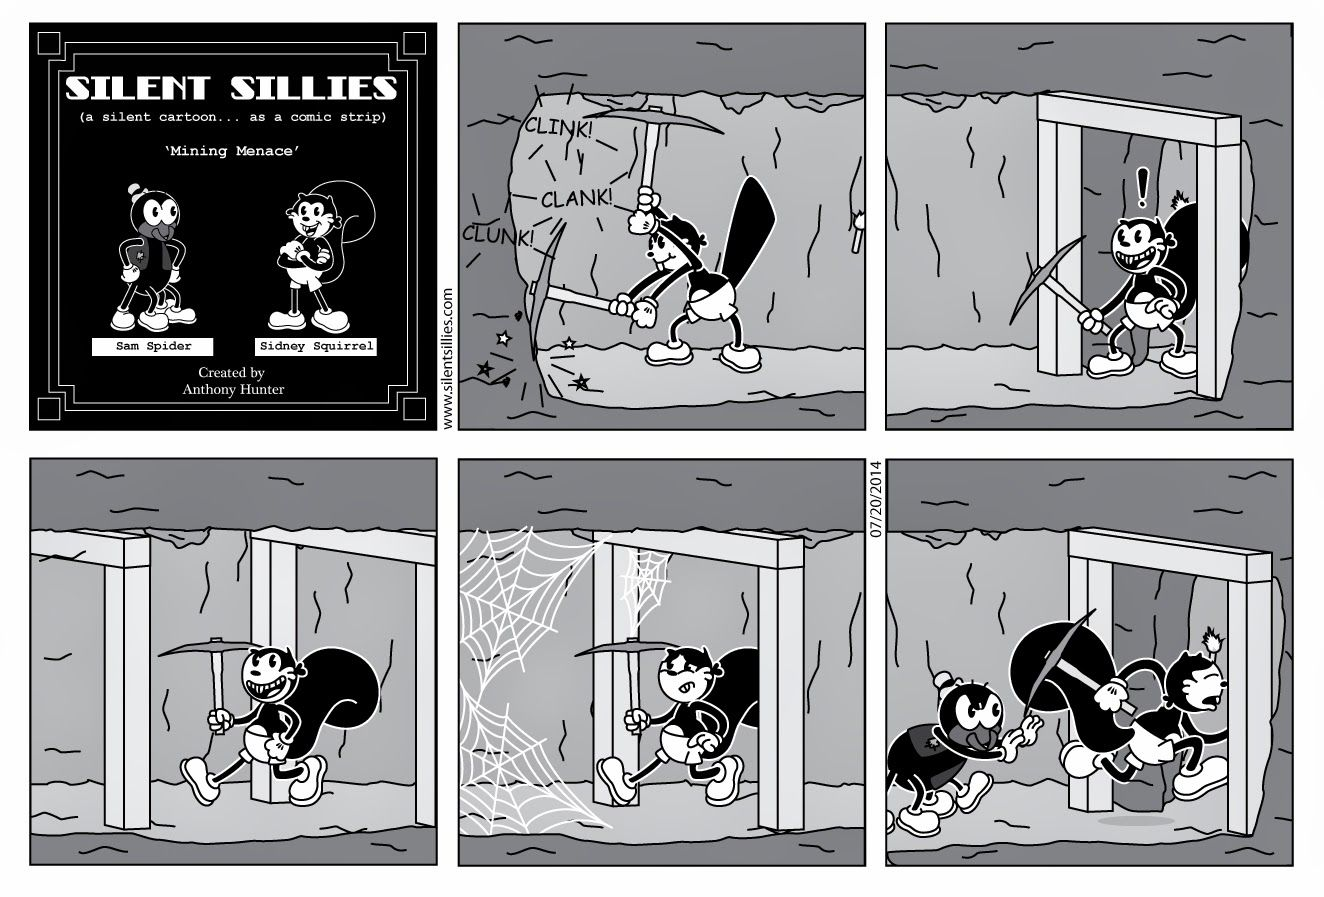 Silent Sillies: Mining Menace a minecraft inspired comic